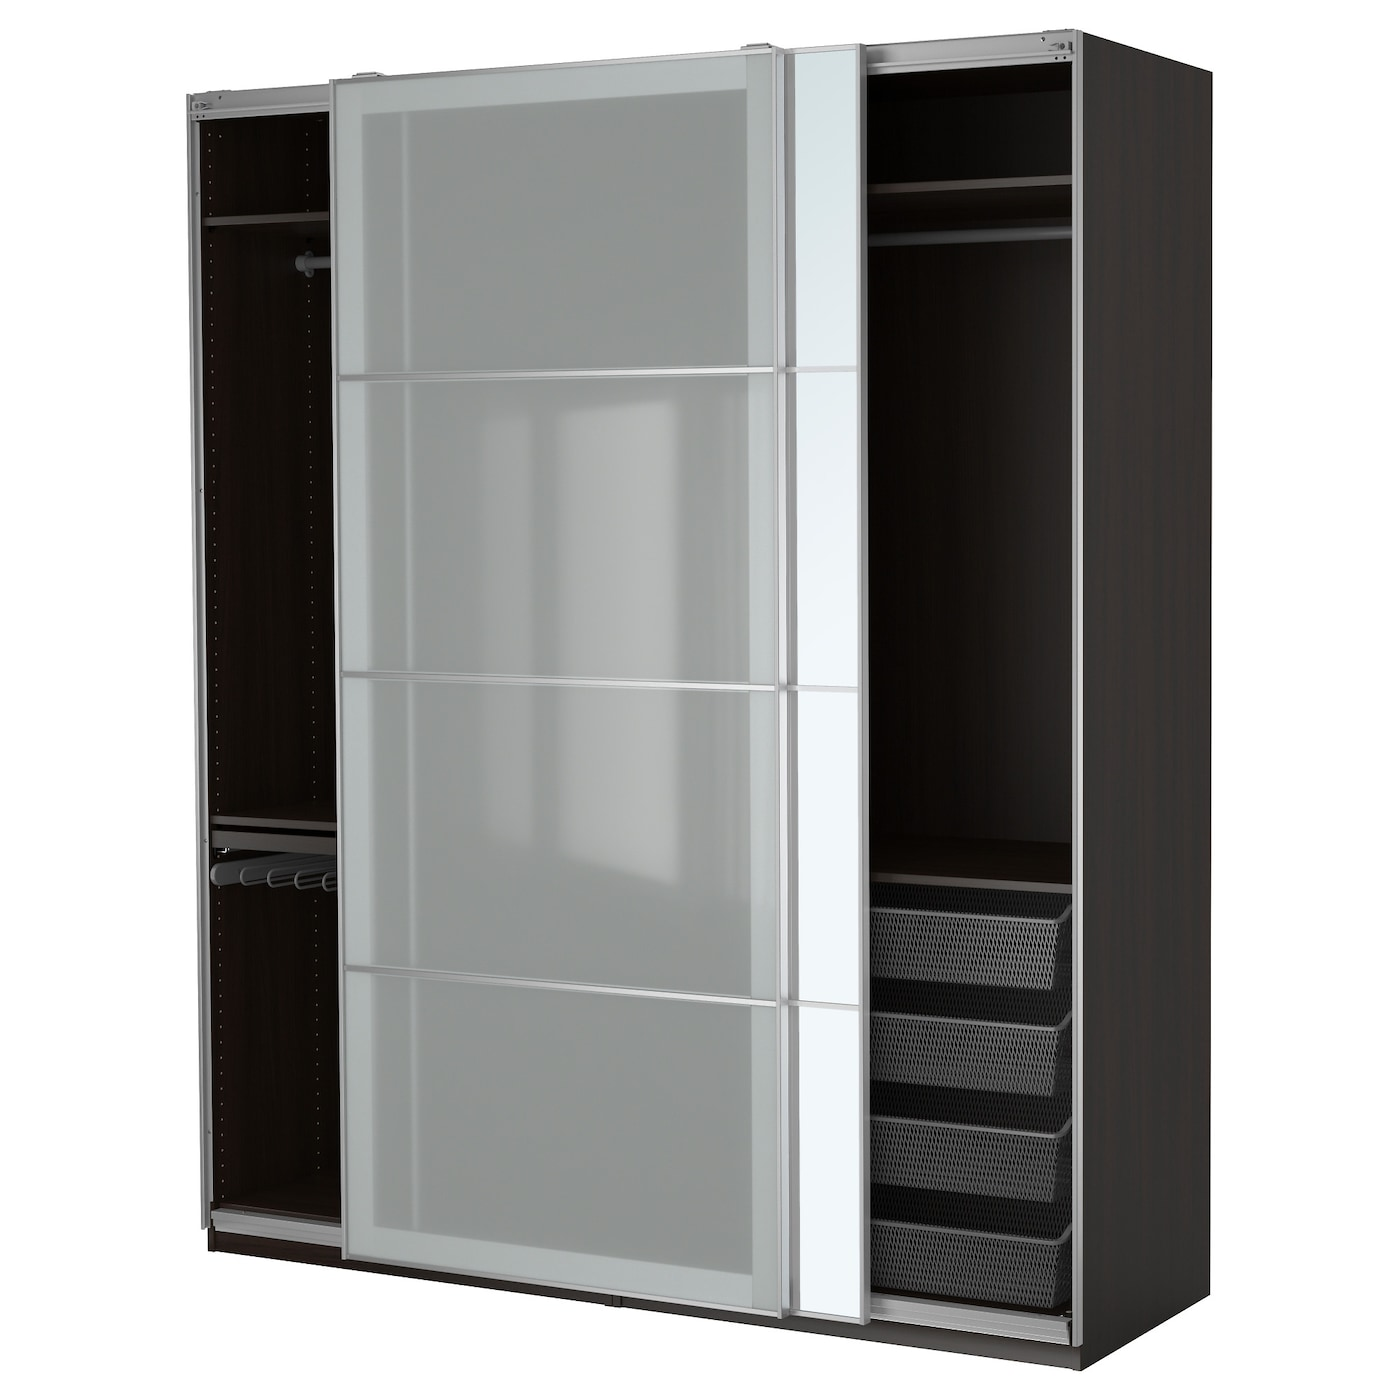 Pax wardrobe black brown auli sekken 200x66x236 cm ikea for Armoire penderie avec portes coulissantes